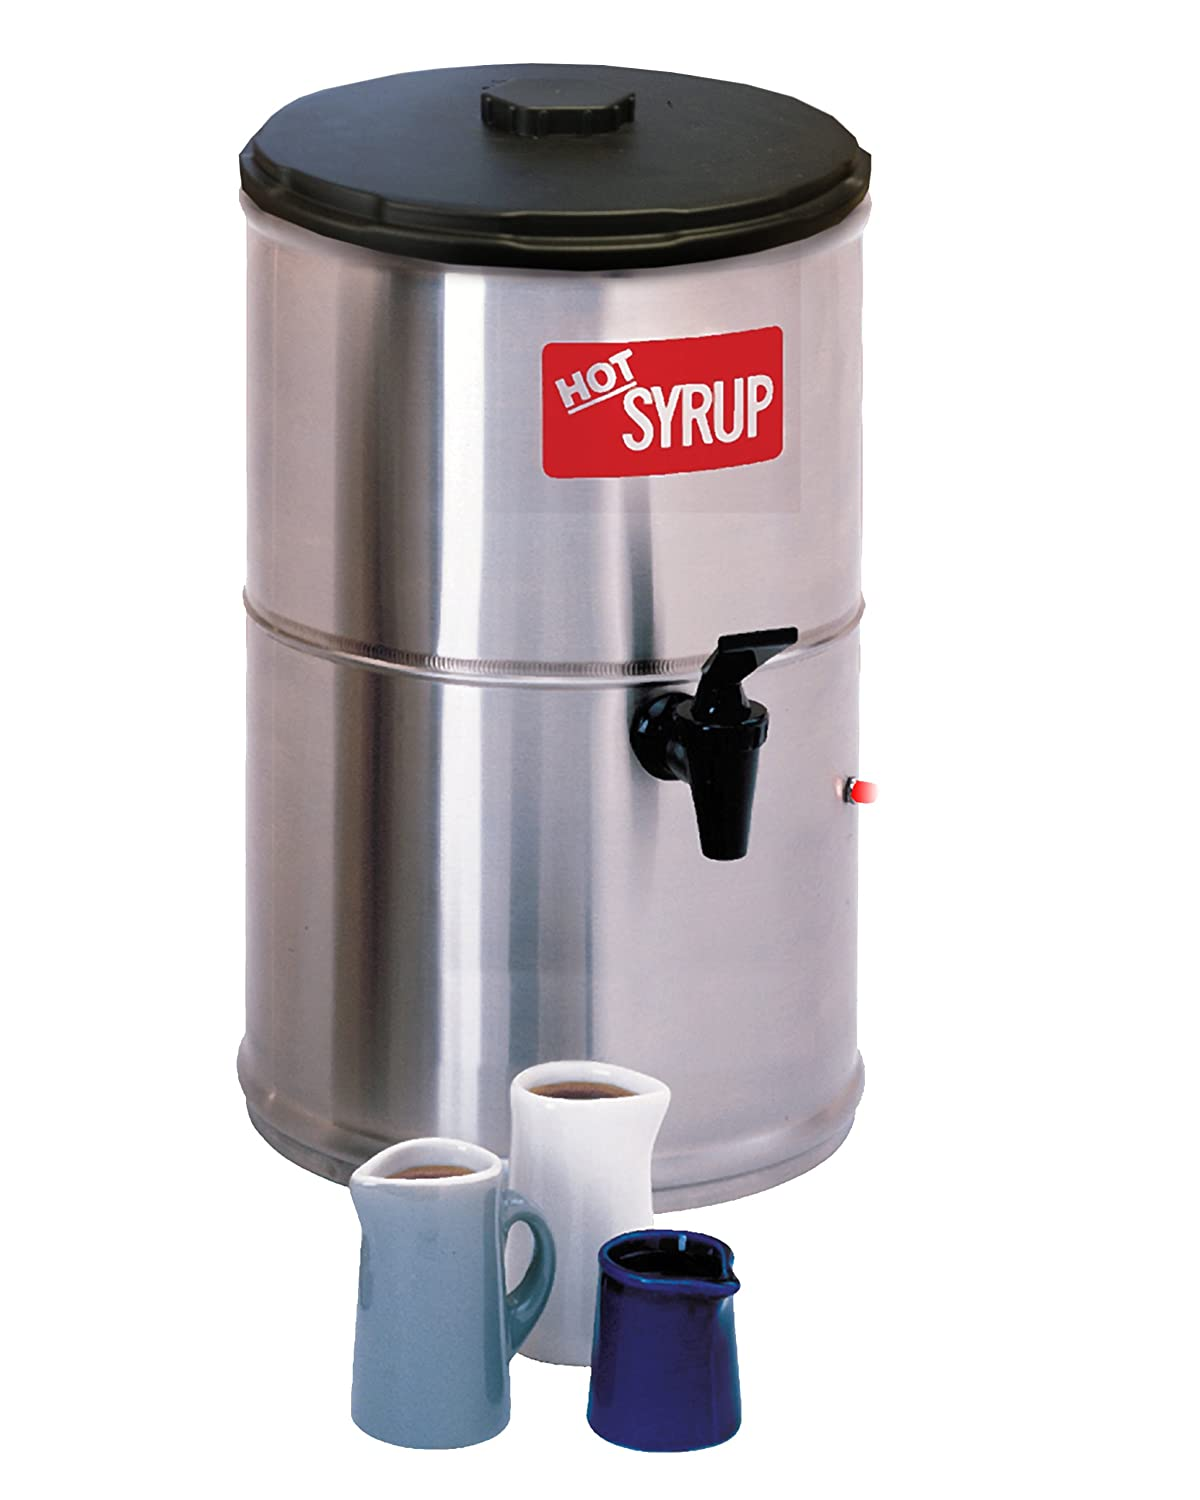 B003WRRLWI Wilbur Curtis Syrup Warmer 2.0 Gallon Syrup Container - Stainless Steel and Temperature Controls - SW-2 (Each) 71iLLQvmn2L._SL1500_